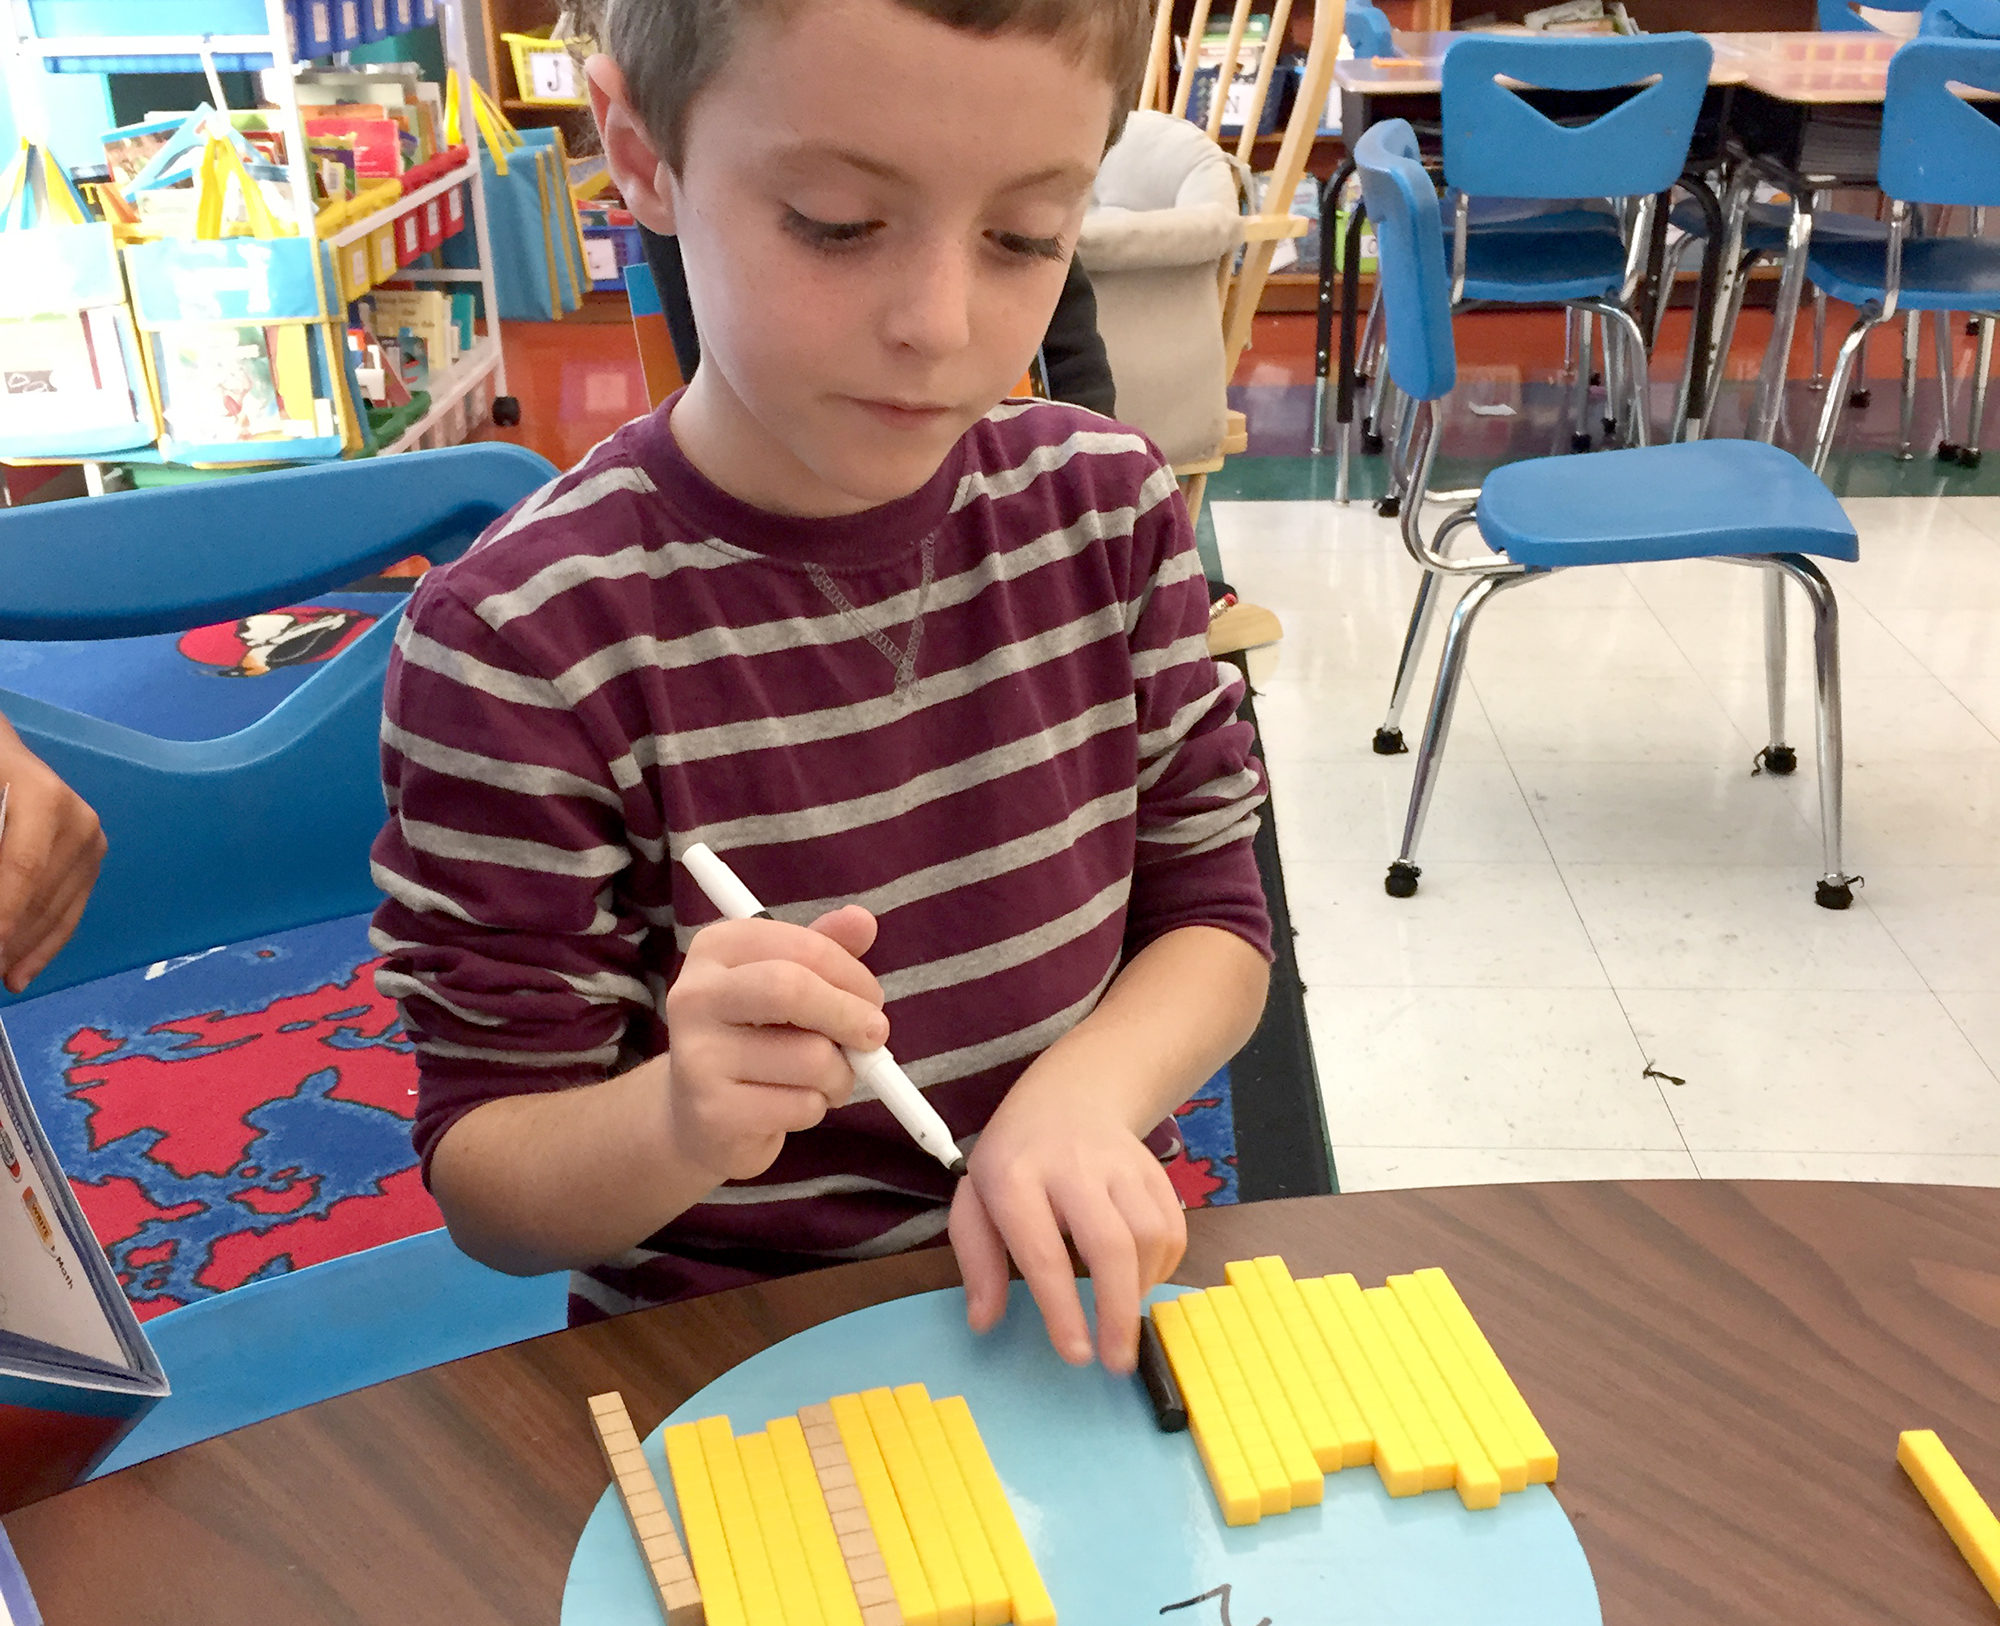 (above) Students use blocks to understand place value and to model, write, and compare 3-digit numbers in Mrs. Bakker's 2nd grade class. Manipulatives, models, pictures, and symbols are used to build mathematical understanding as part of the Go Math! program. The program helps students engage with the Common Core State Standards.